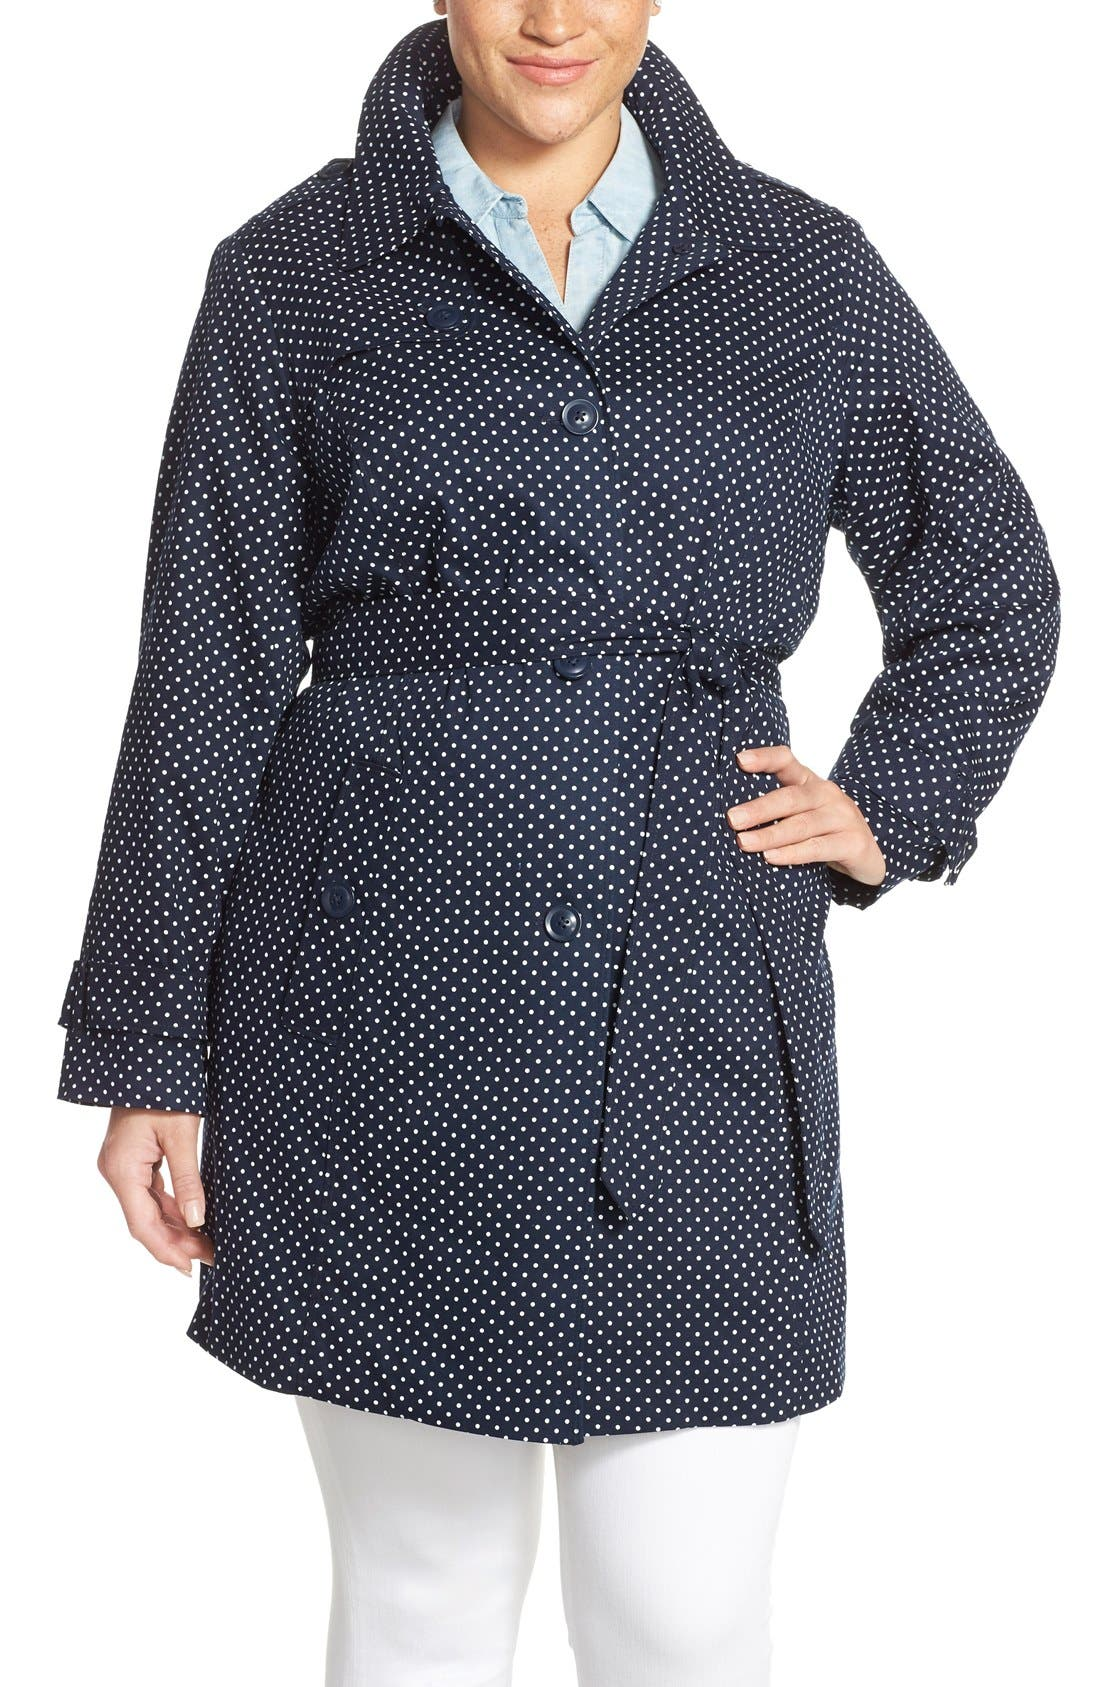 London Fog Polka Dot Single Breasted Trench Coat (Plus Size)